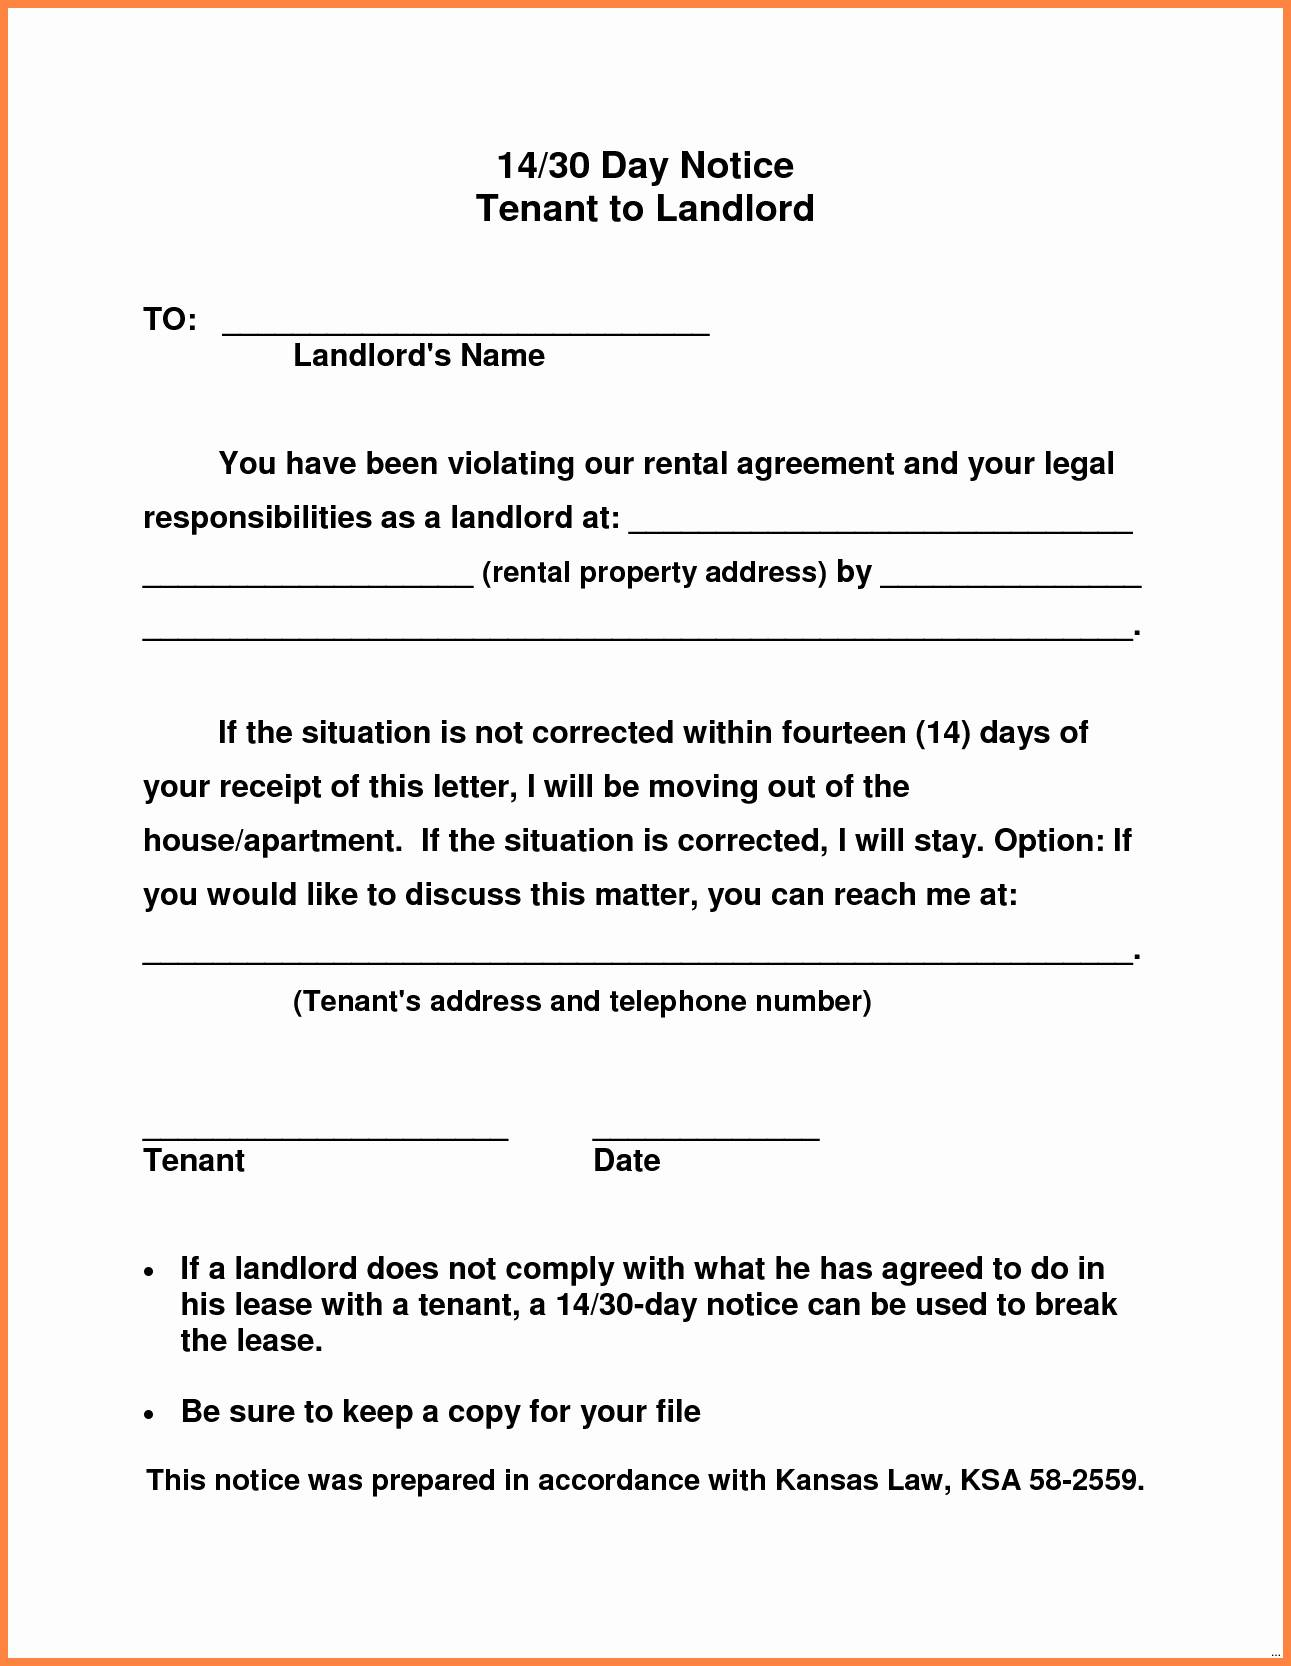 Landlord Notice Letter to Tenant Template - 30 Day Notice Template to Landlord Inspirational 20 Fresh Letter